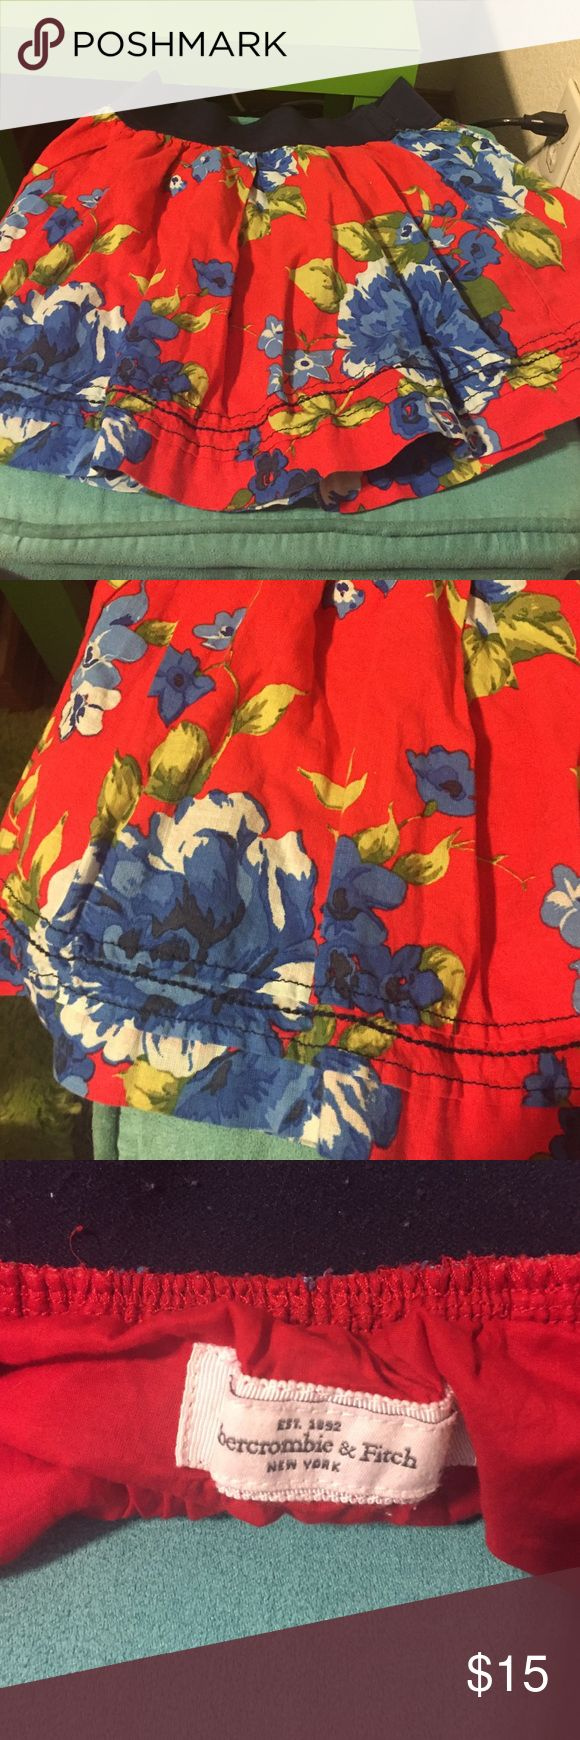 Abercrombie and Fitch skirt Great condition! Red with blue flowers Abercrombie and Fitch skirt Abercrombie & Fitch Skirts